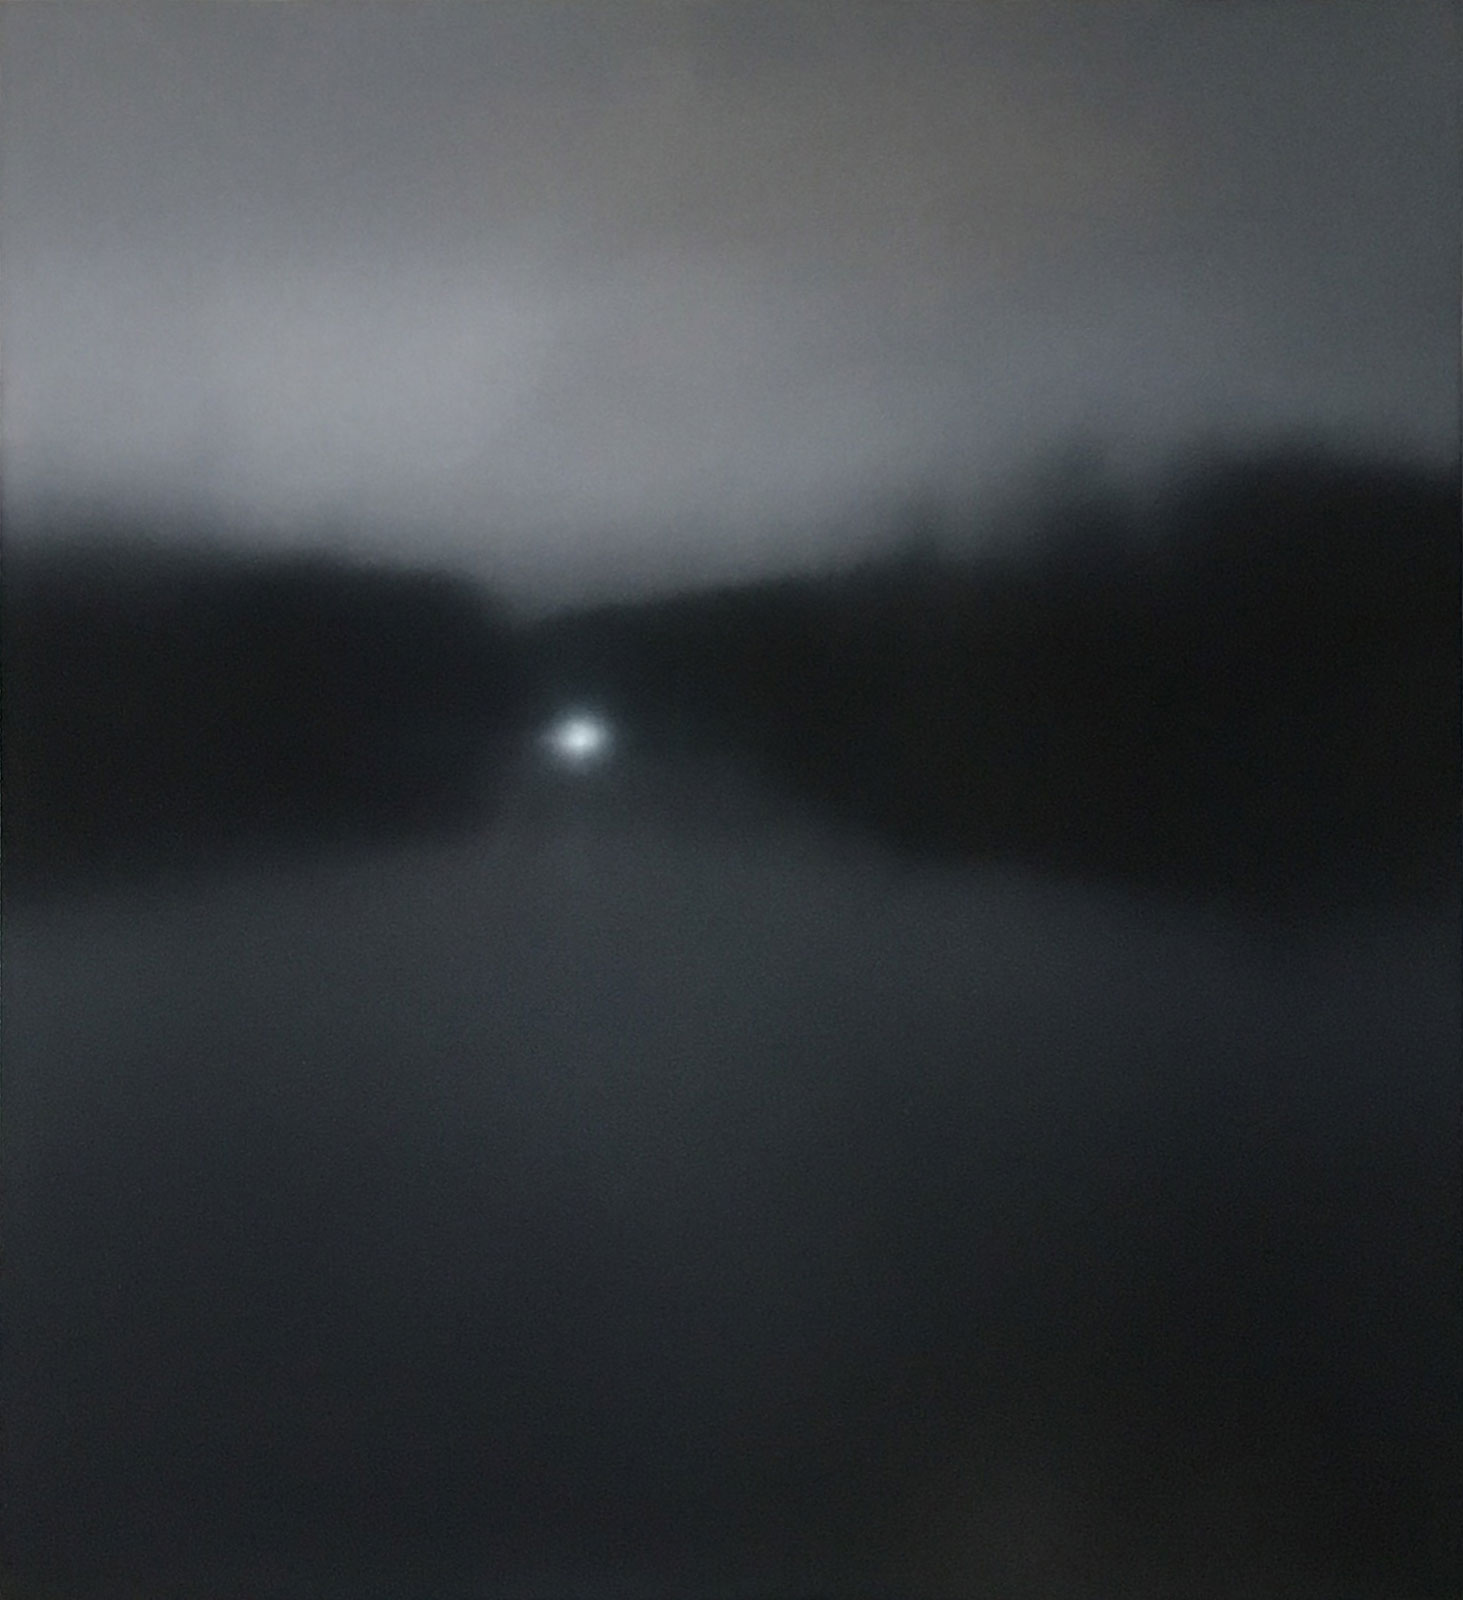 T#149-2019, 80x73cm, oil on canvas